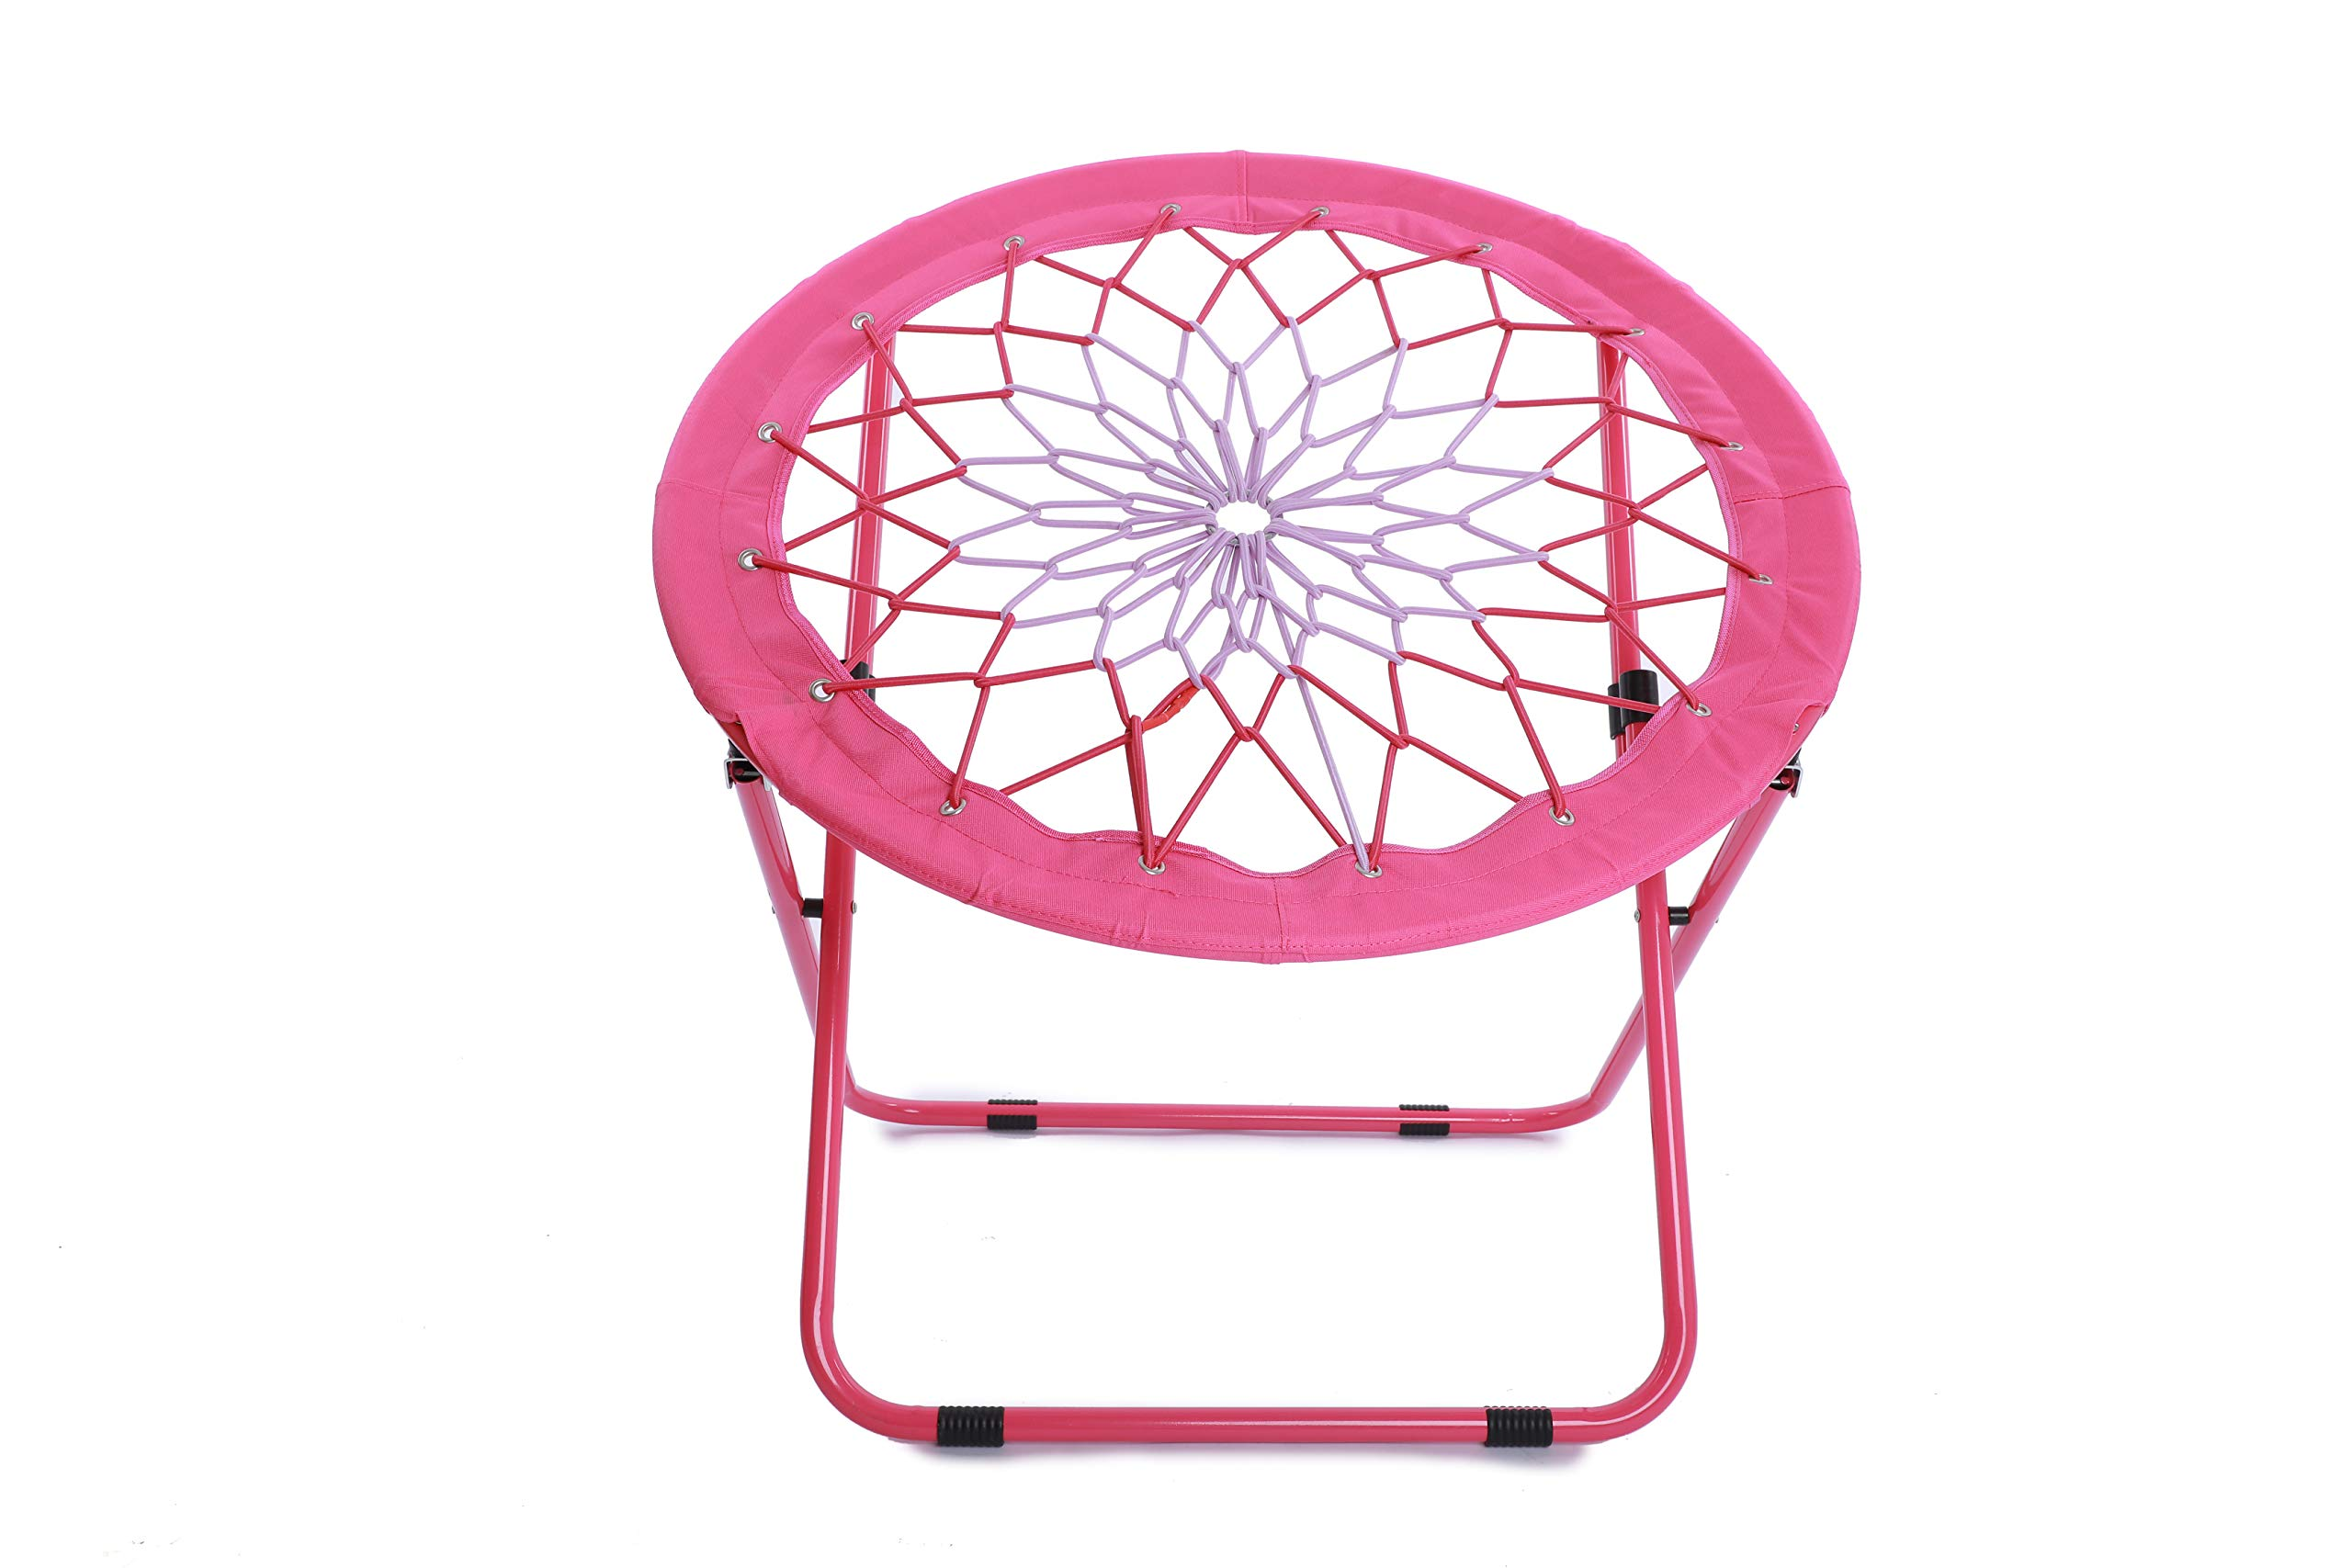 Camp Field Camping and Room Bungee Folding Dish Chair for Room Garden and Outdoor (Pink) by Camp Field